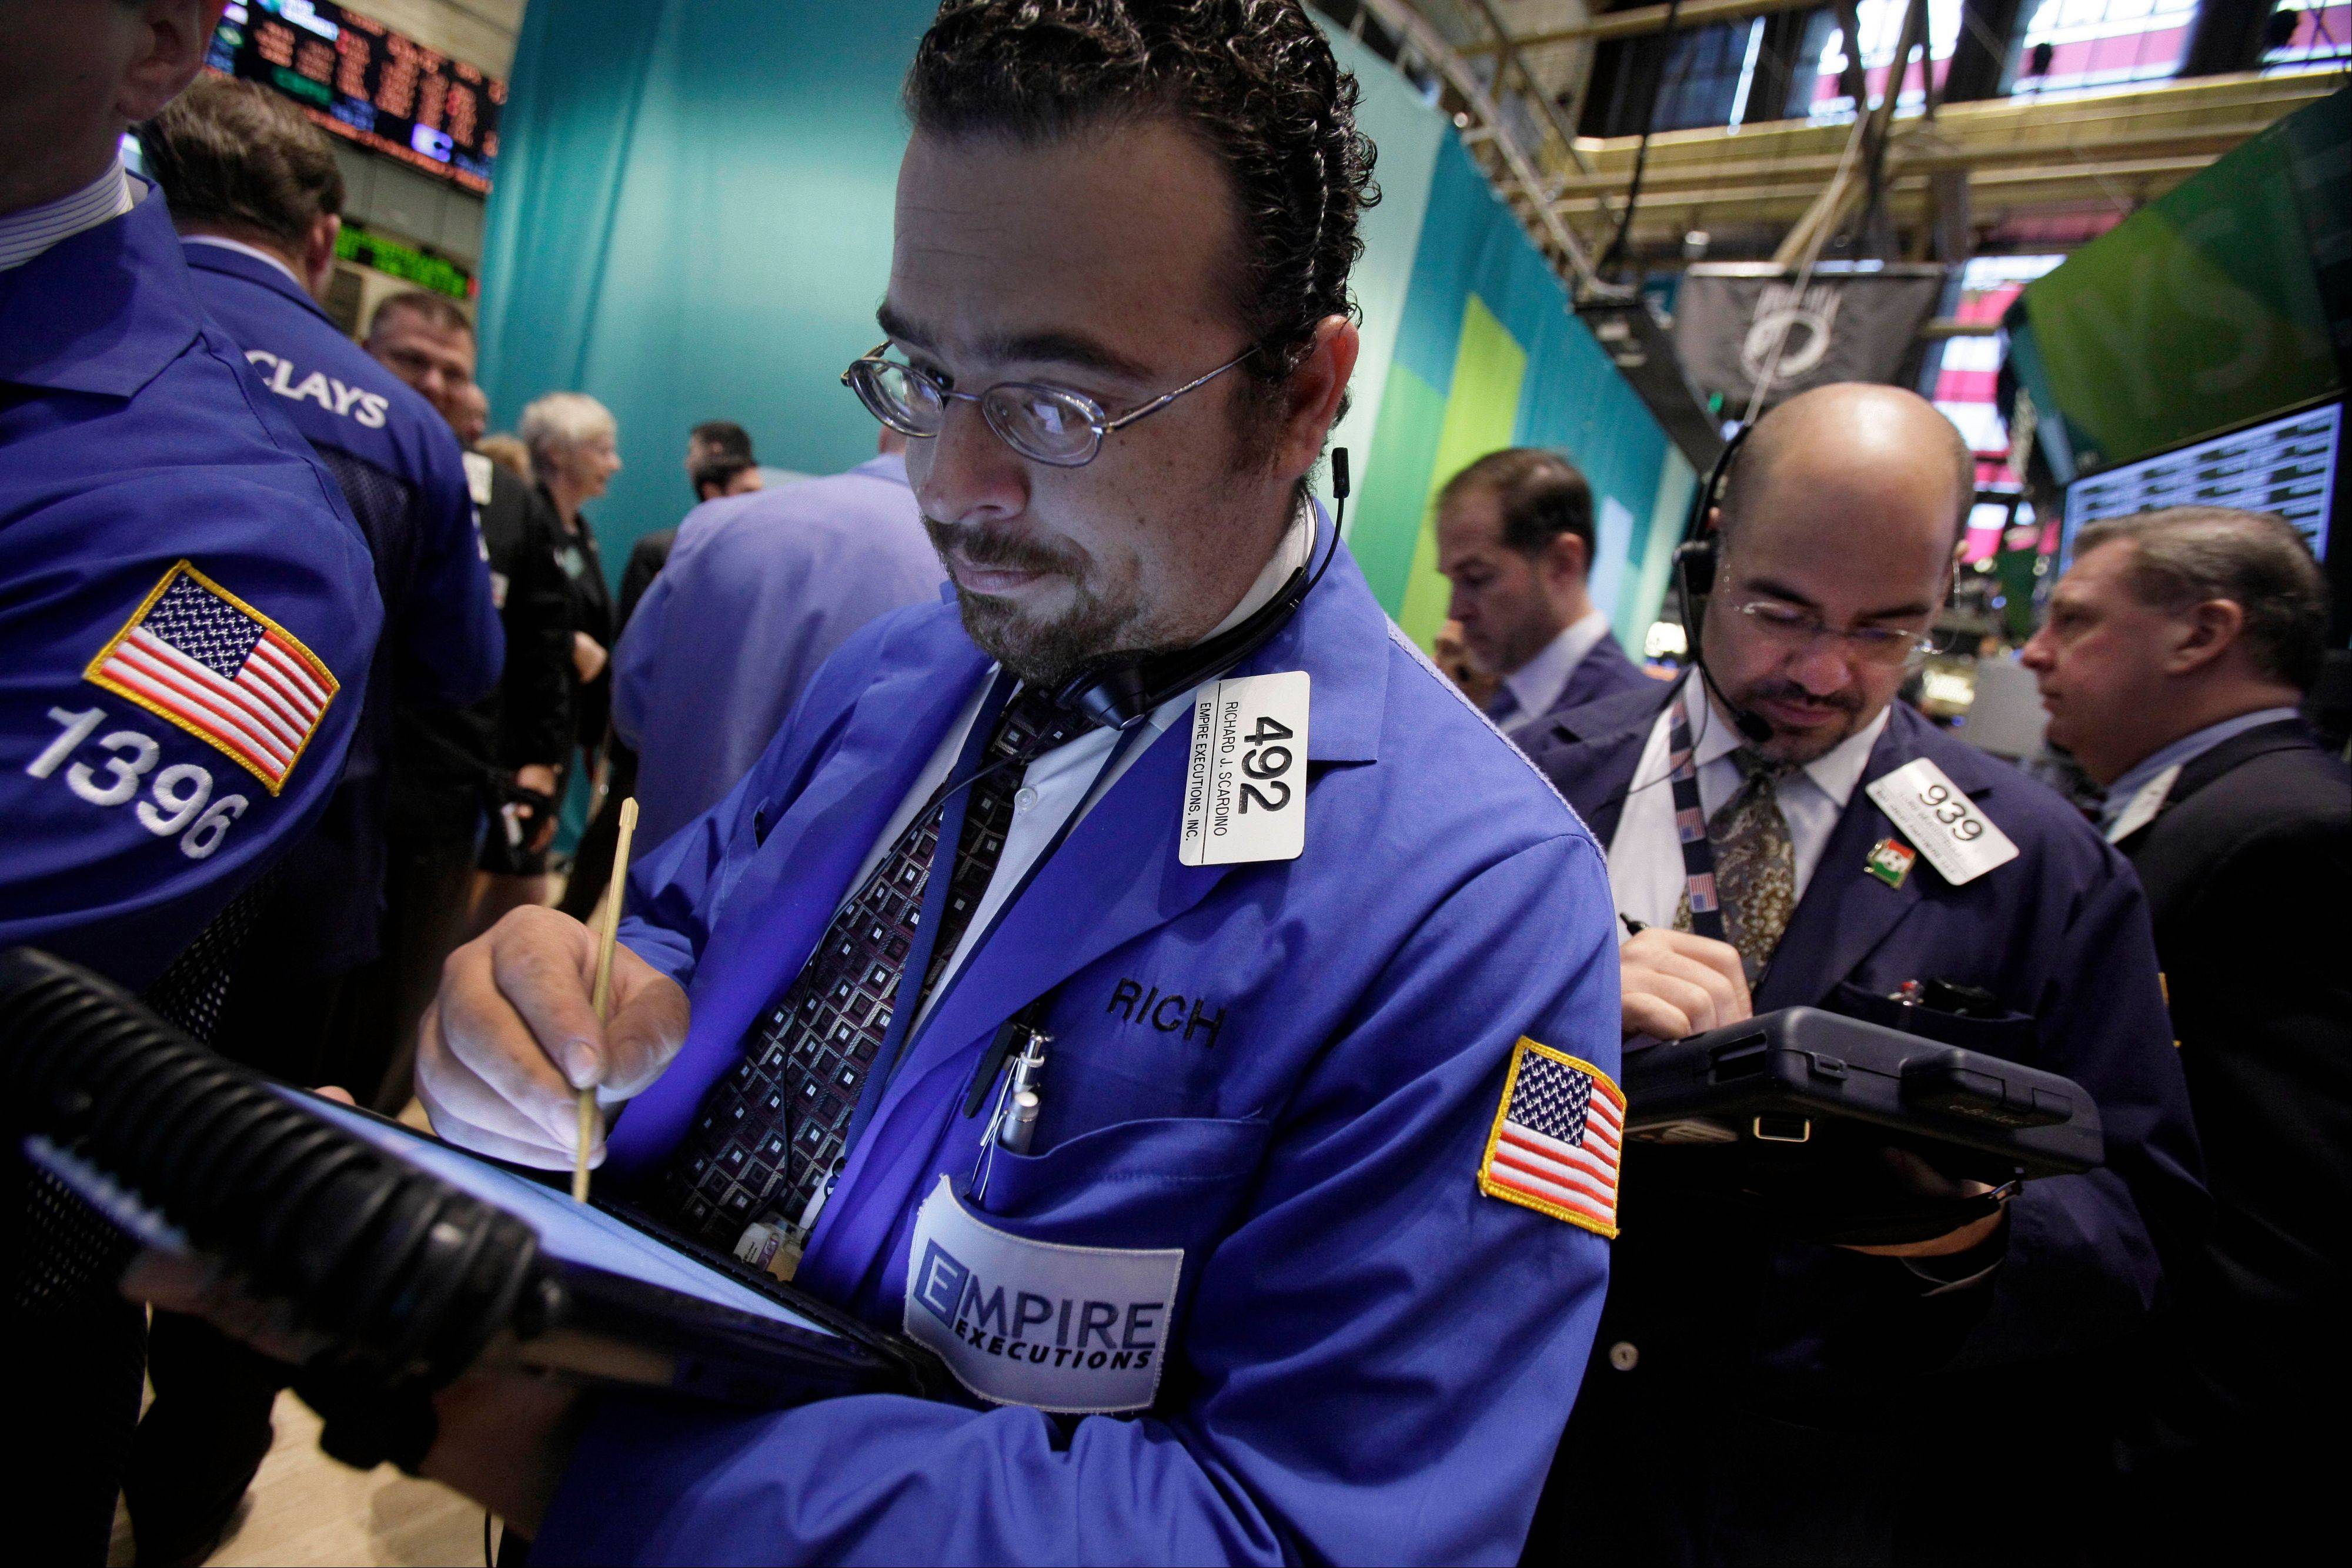 U.S. stocks fell, after a three-day advance in the Standard & Poor�s 500 Index, as Google pulled down technology shares after reporting third-quarter profit and sales that missed estimates.